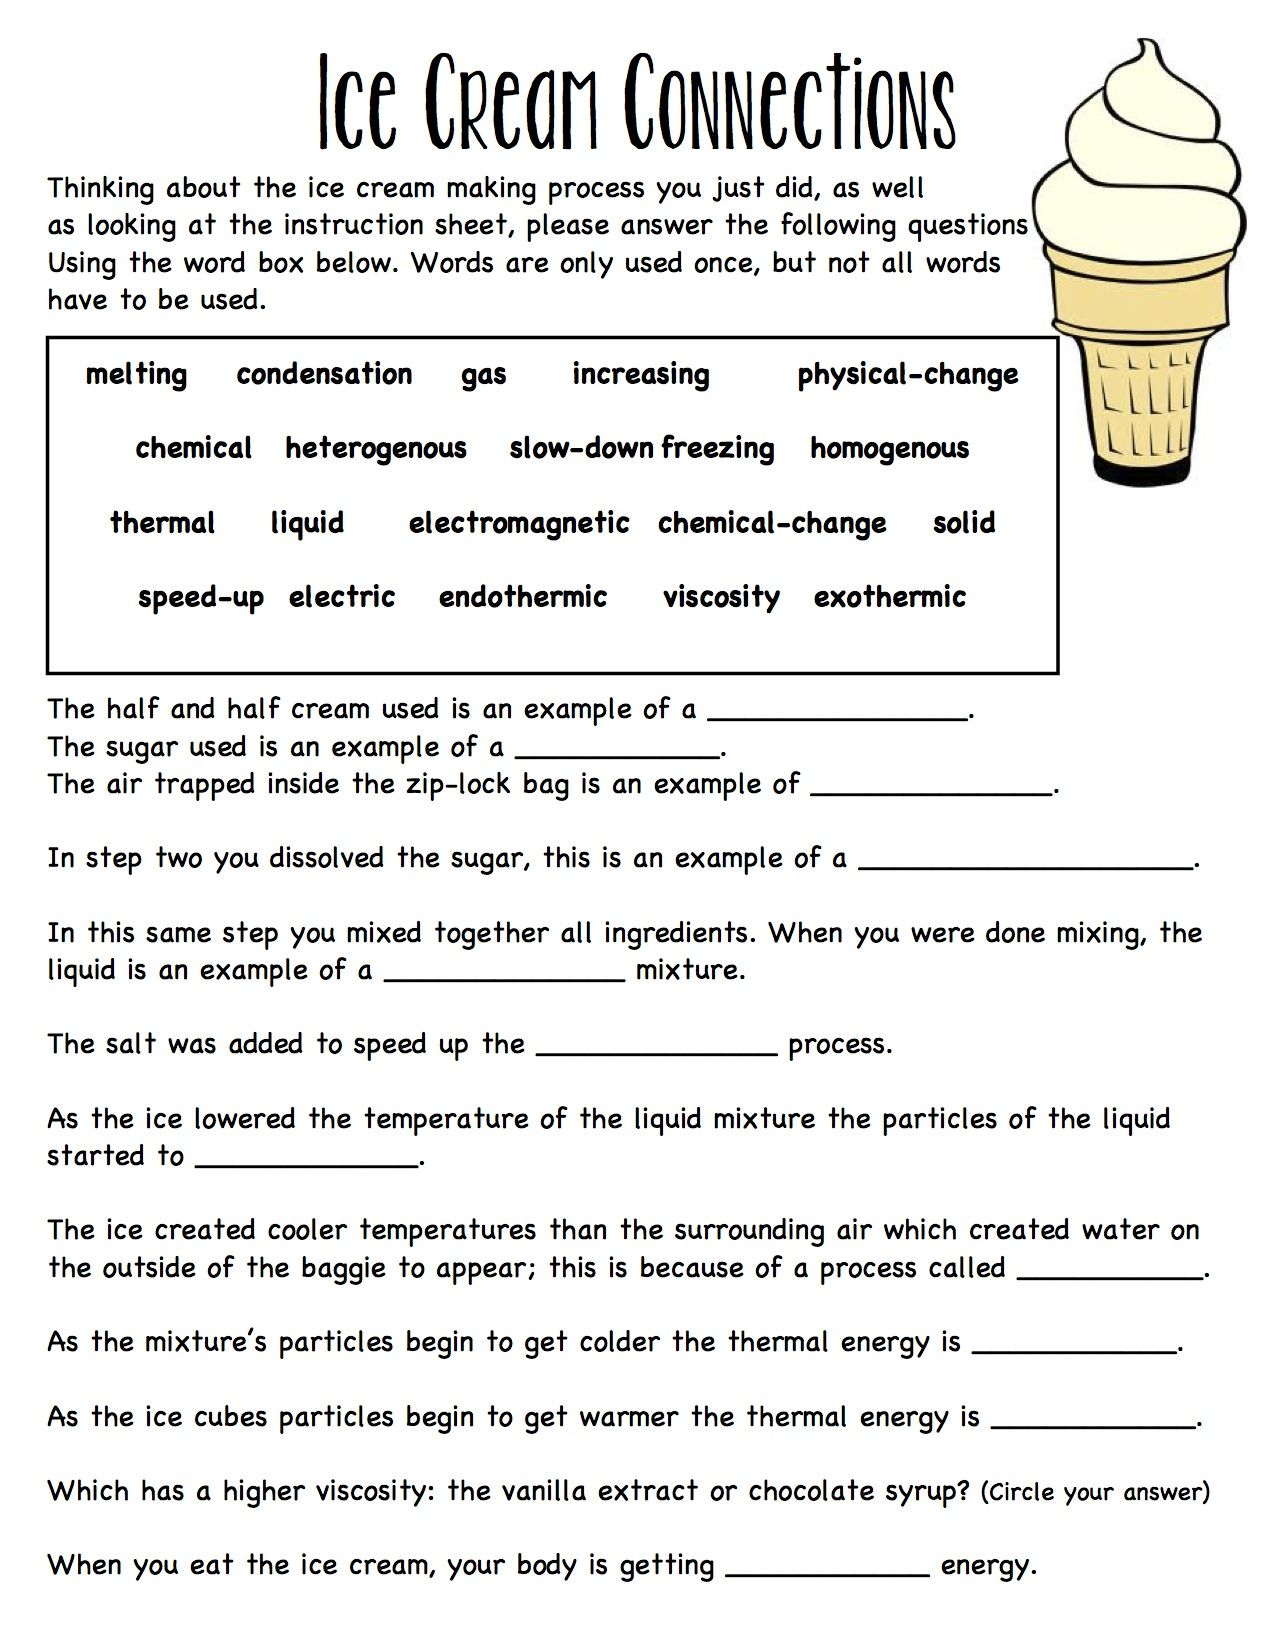 worksheet Thermal Energy Worksheet baggie ice cream worksheet connecting ideas together solid liquid gas melting